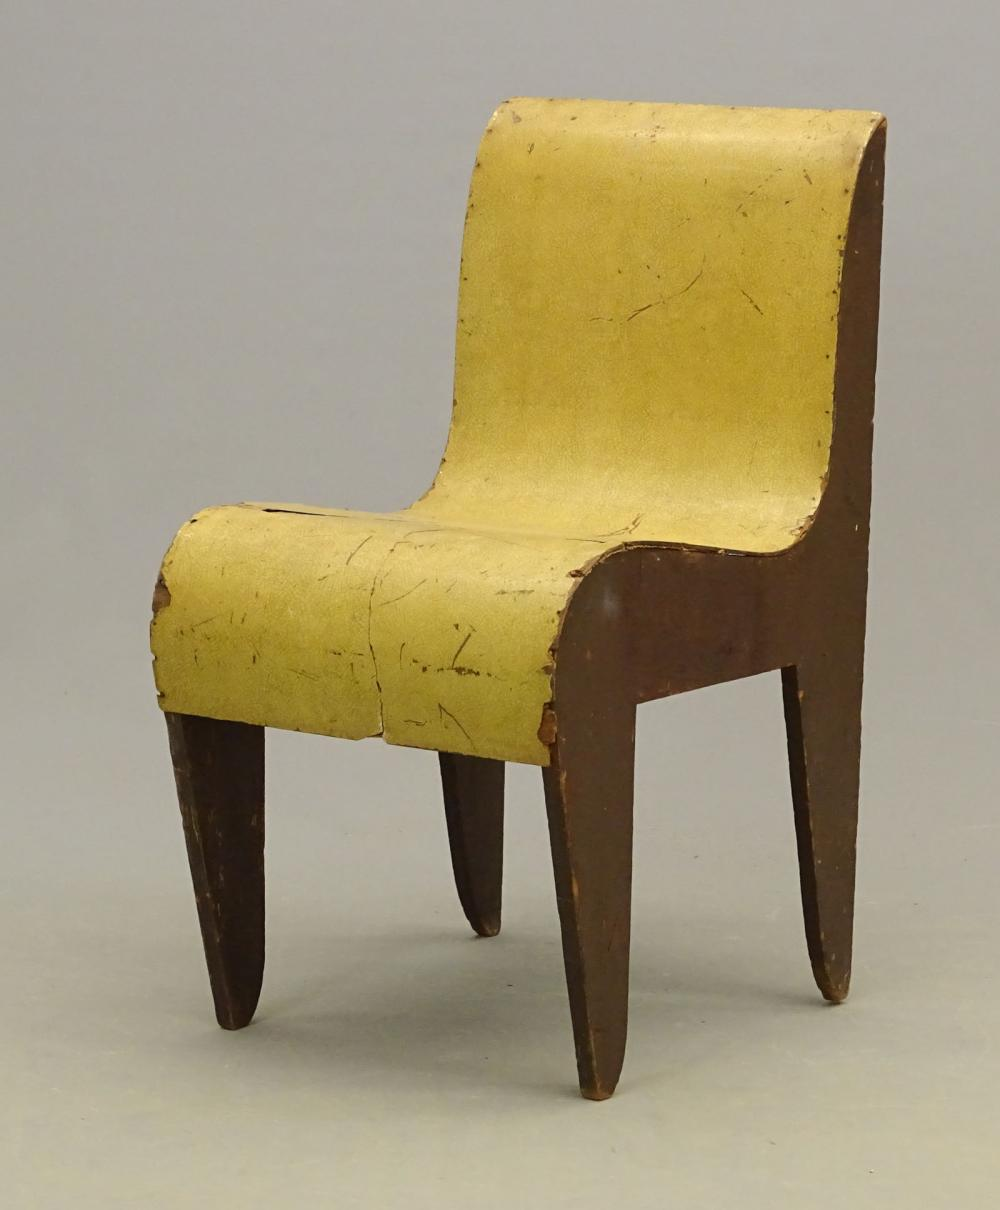 Attributed To: Marcel Breuer Prototype Chair